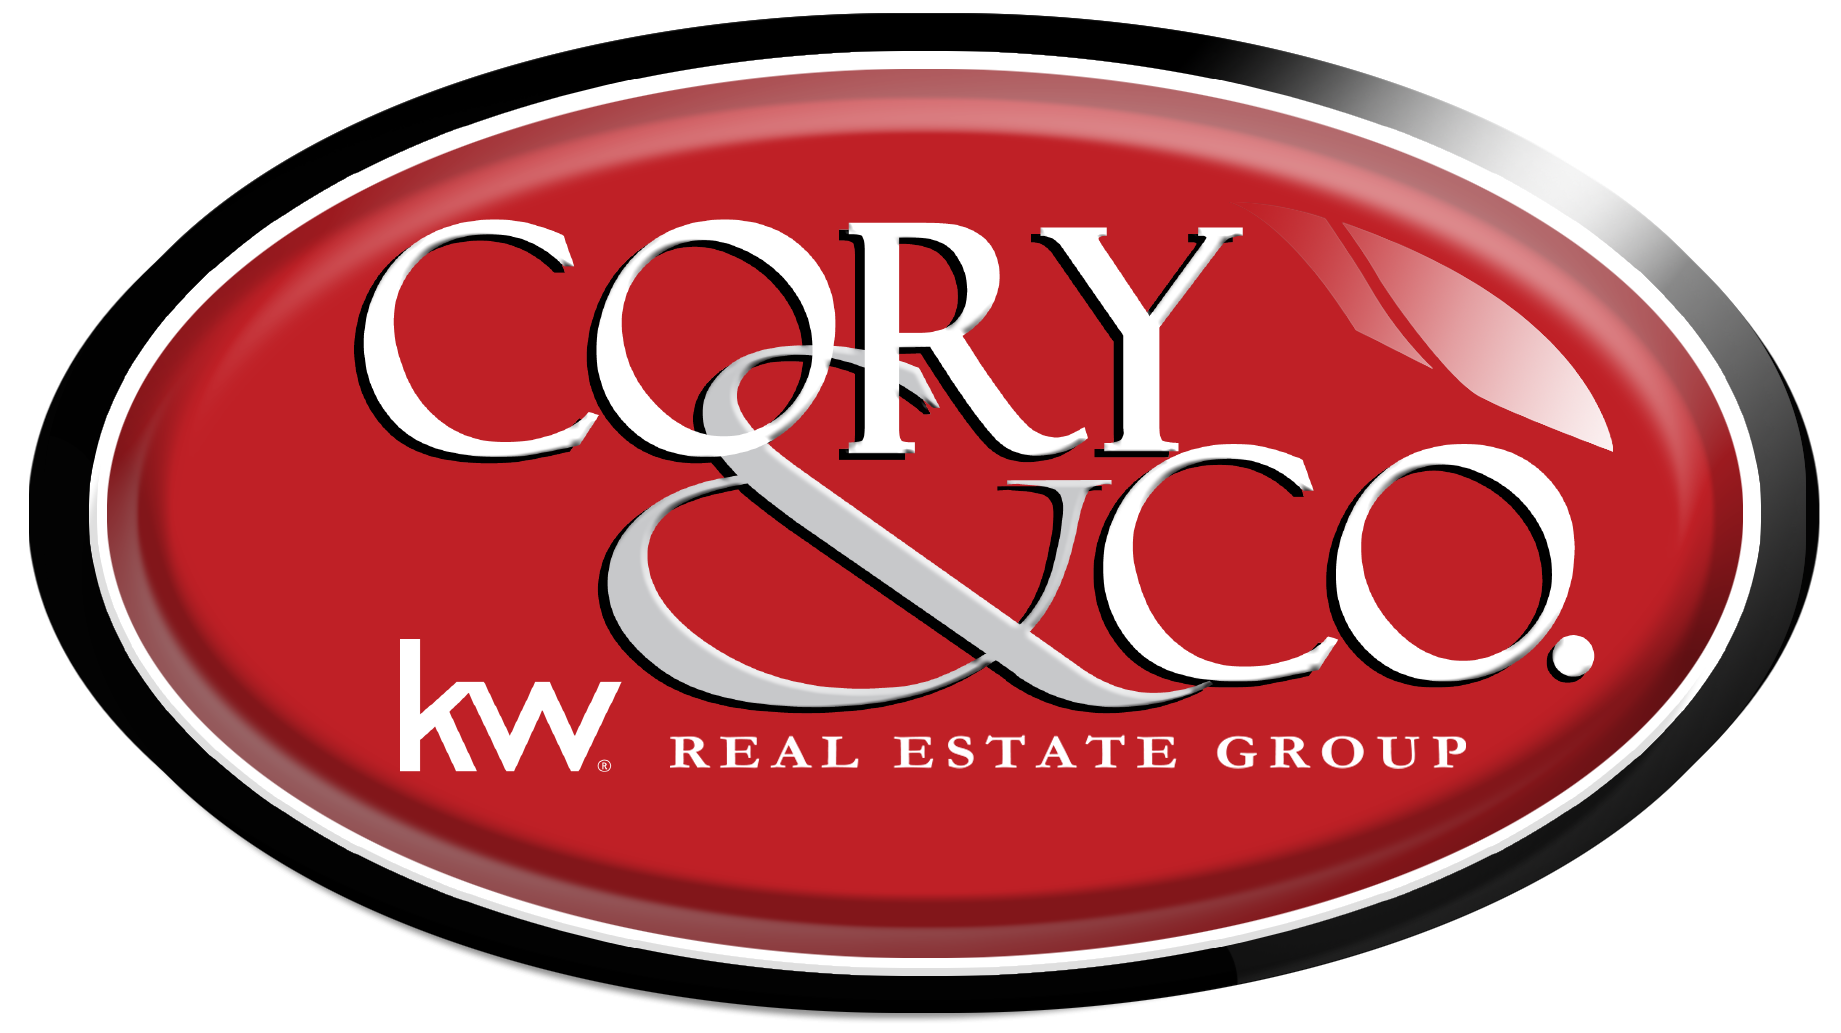 Cory & Co. Real Estate Group